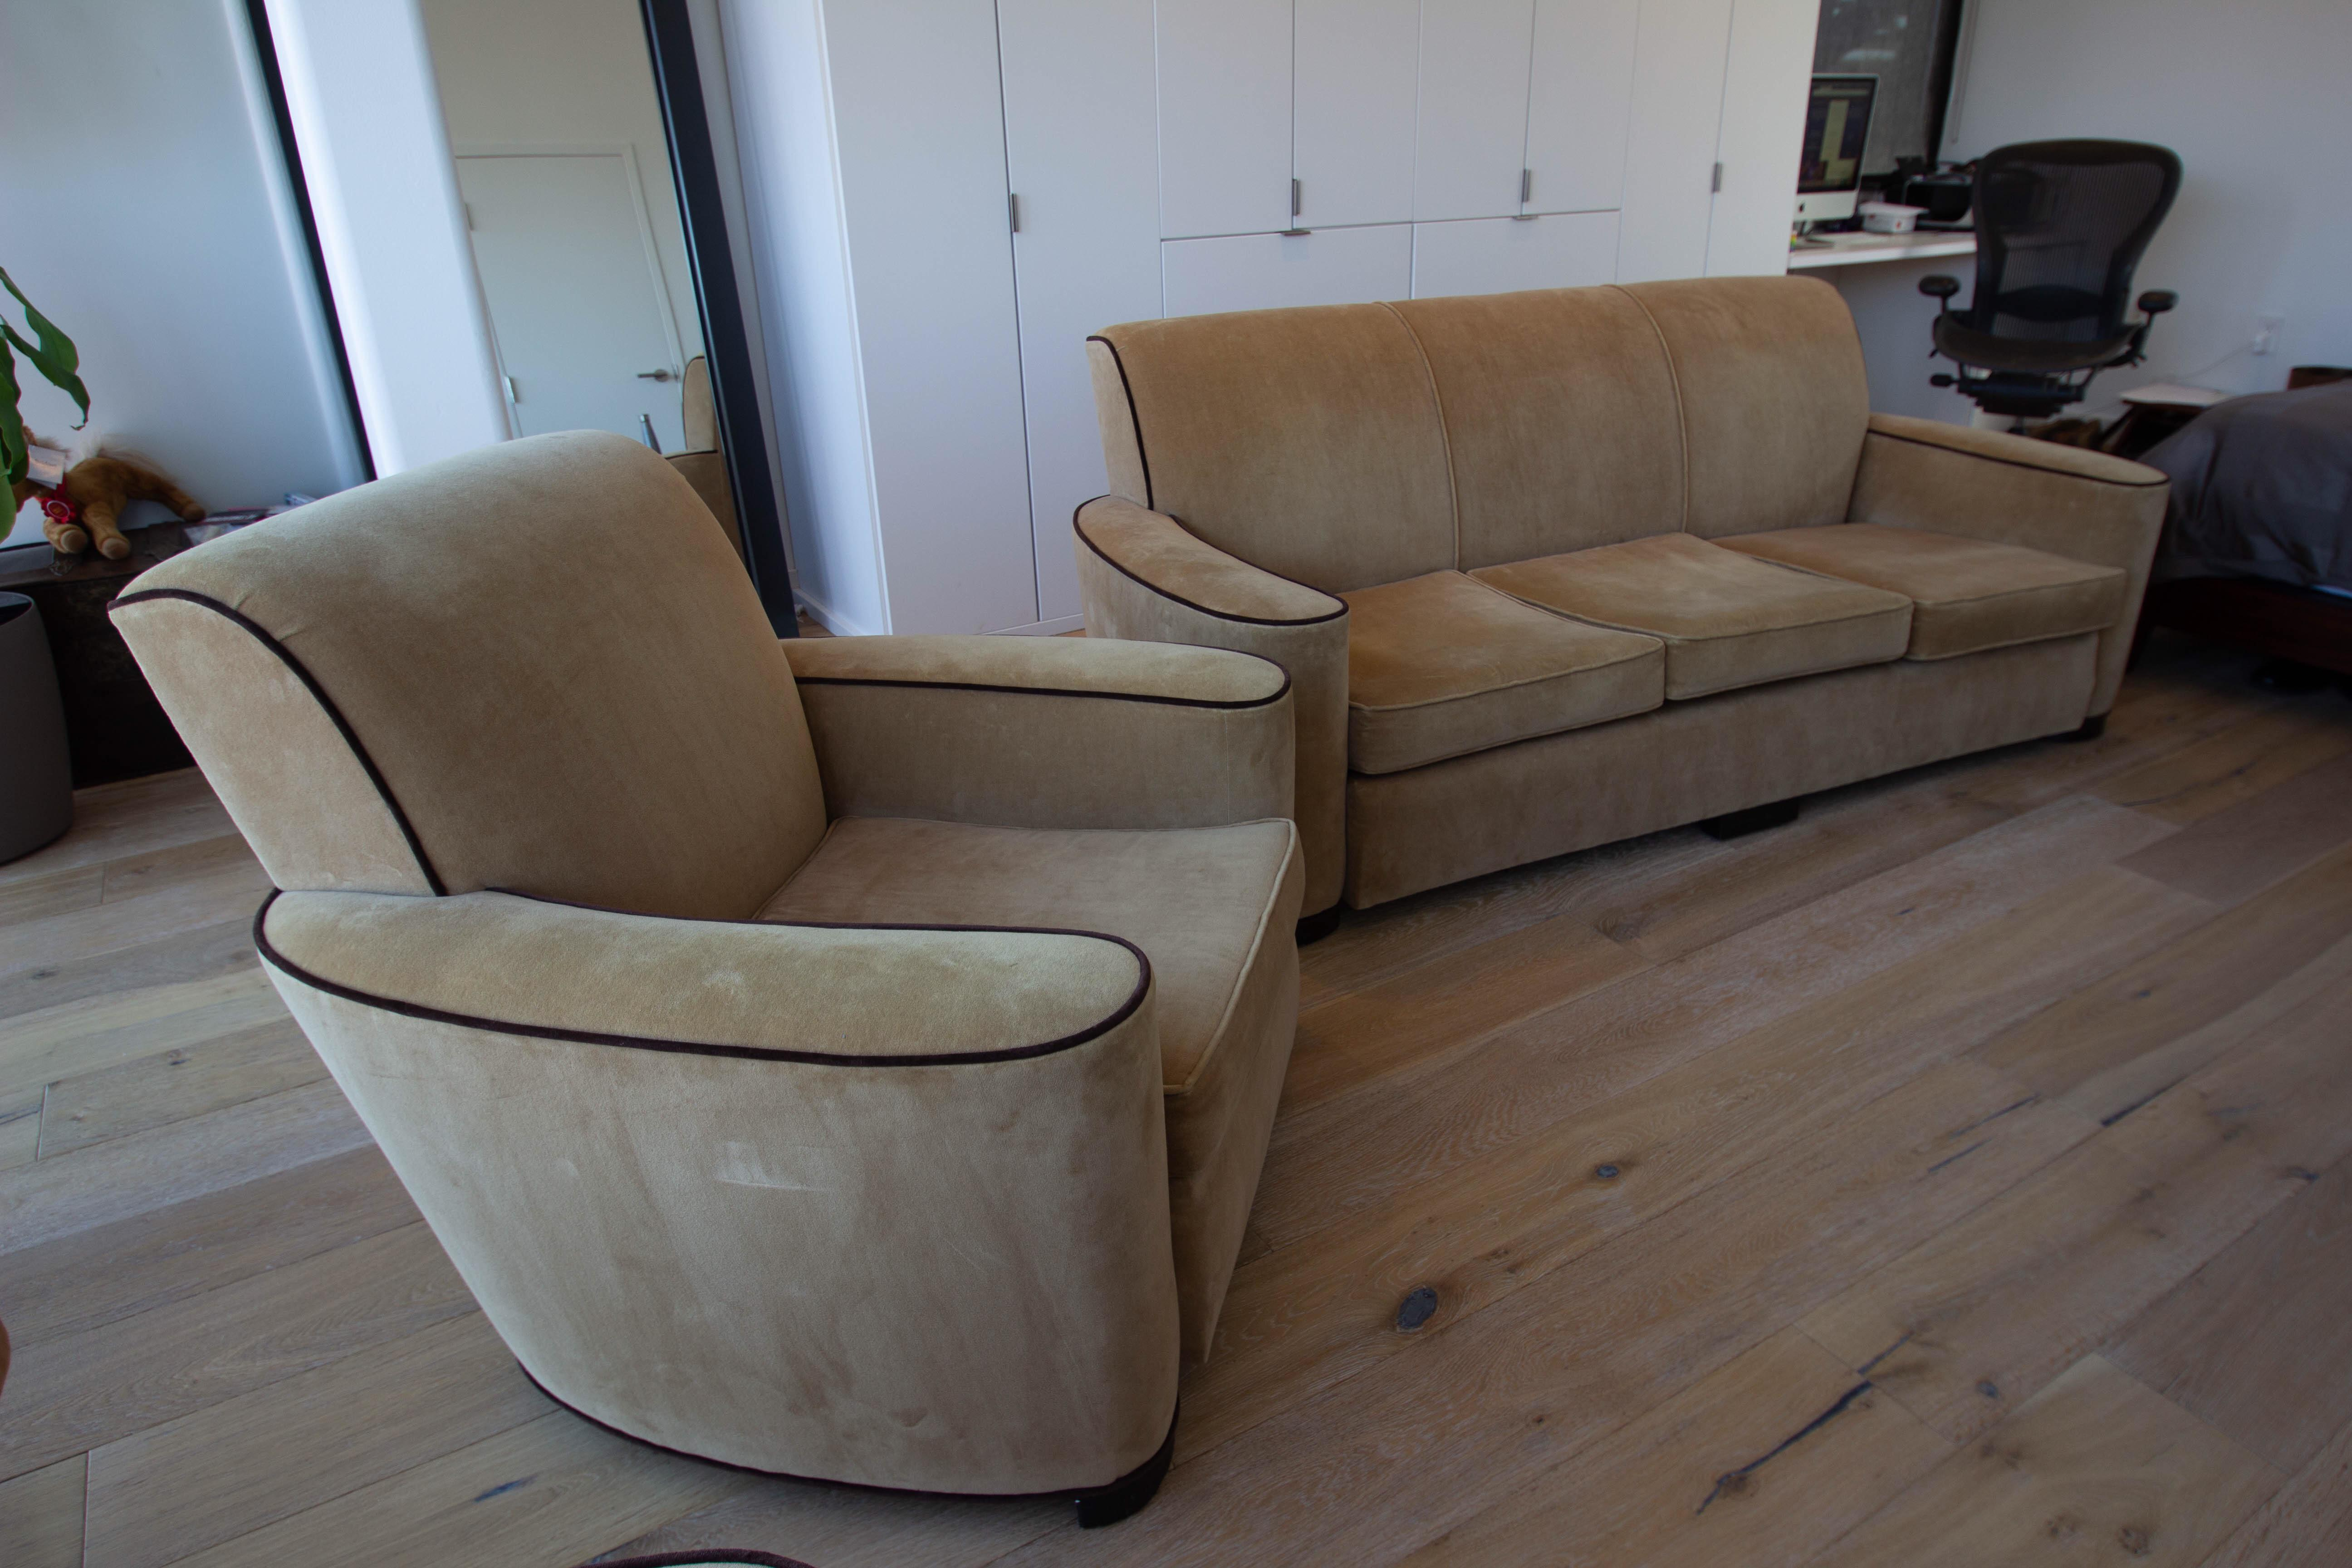 couch and chair set lawn chairs home depot 1930s corvette lounge a pair chairish i bought this beautiful 1936 art deco from the nyc antique store